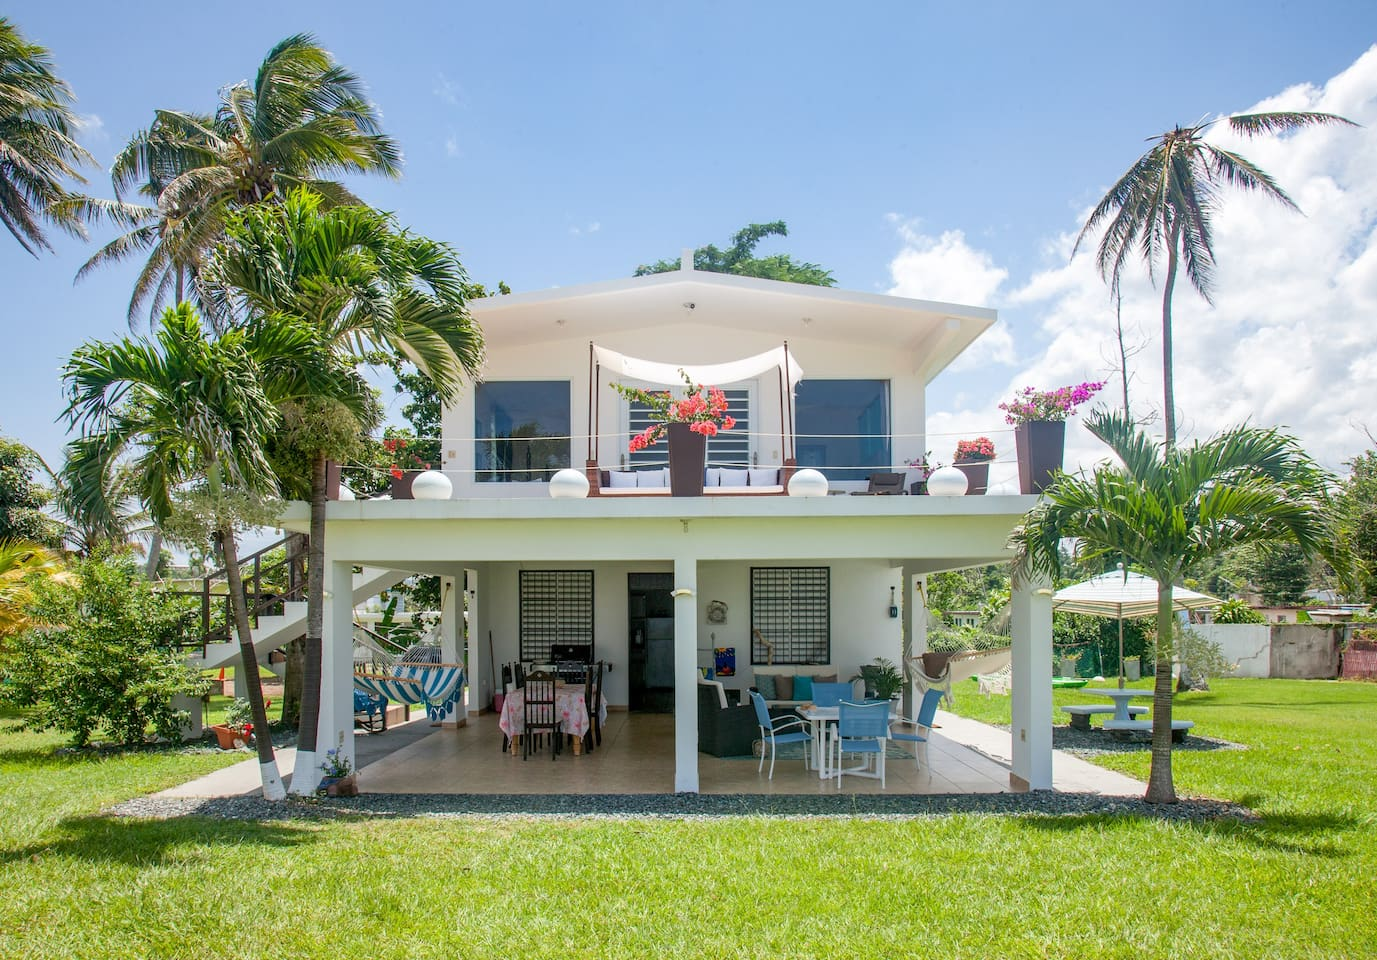 Ocean front house with large property